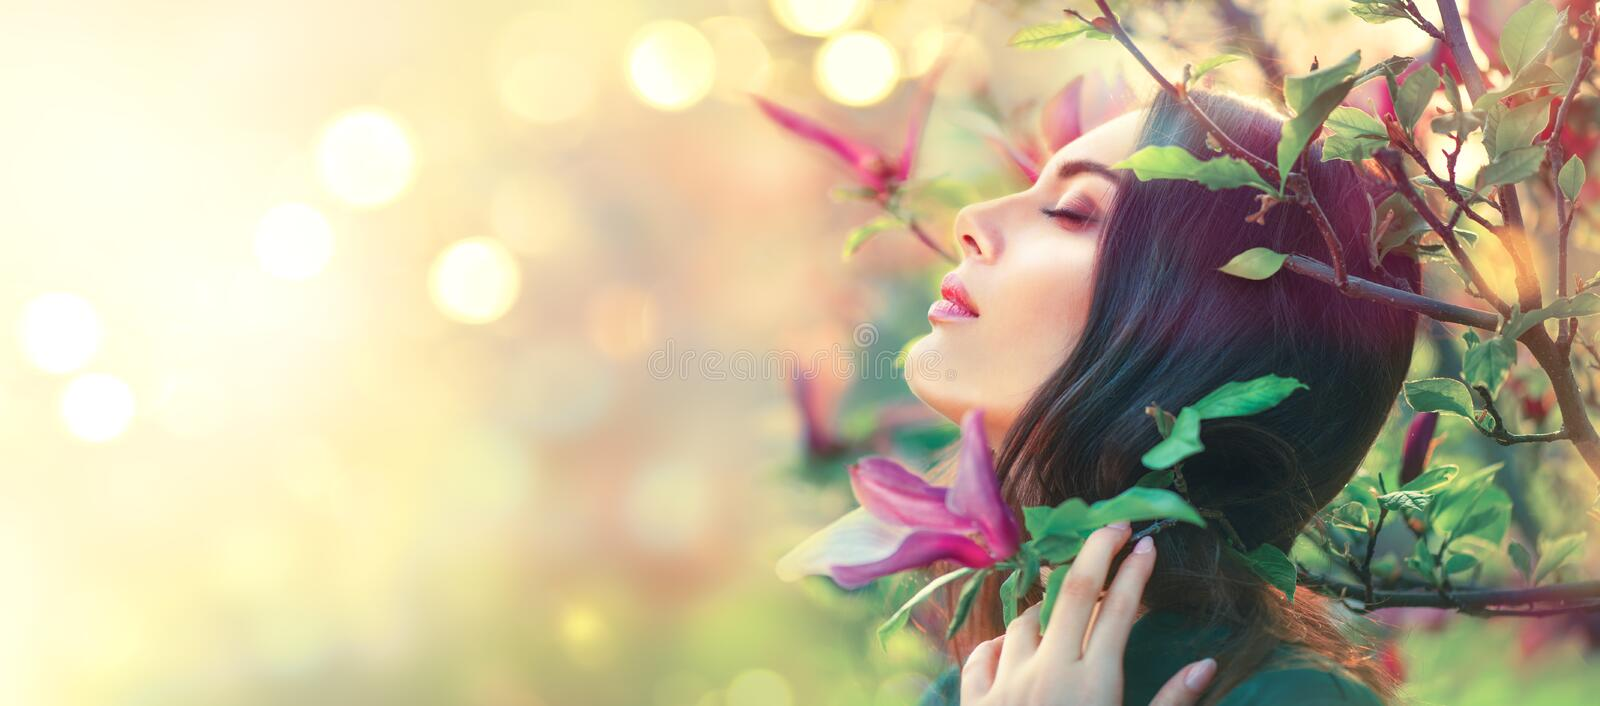 Blooming magnolia trees. Beauty young woman touching and smelling spring magnolia flowers royalty free stock photos